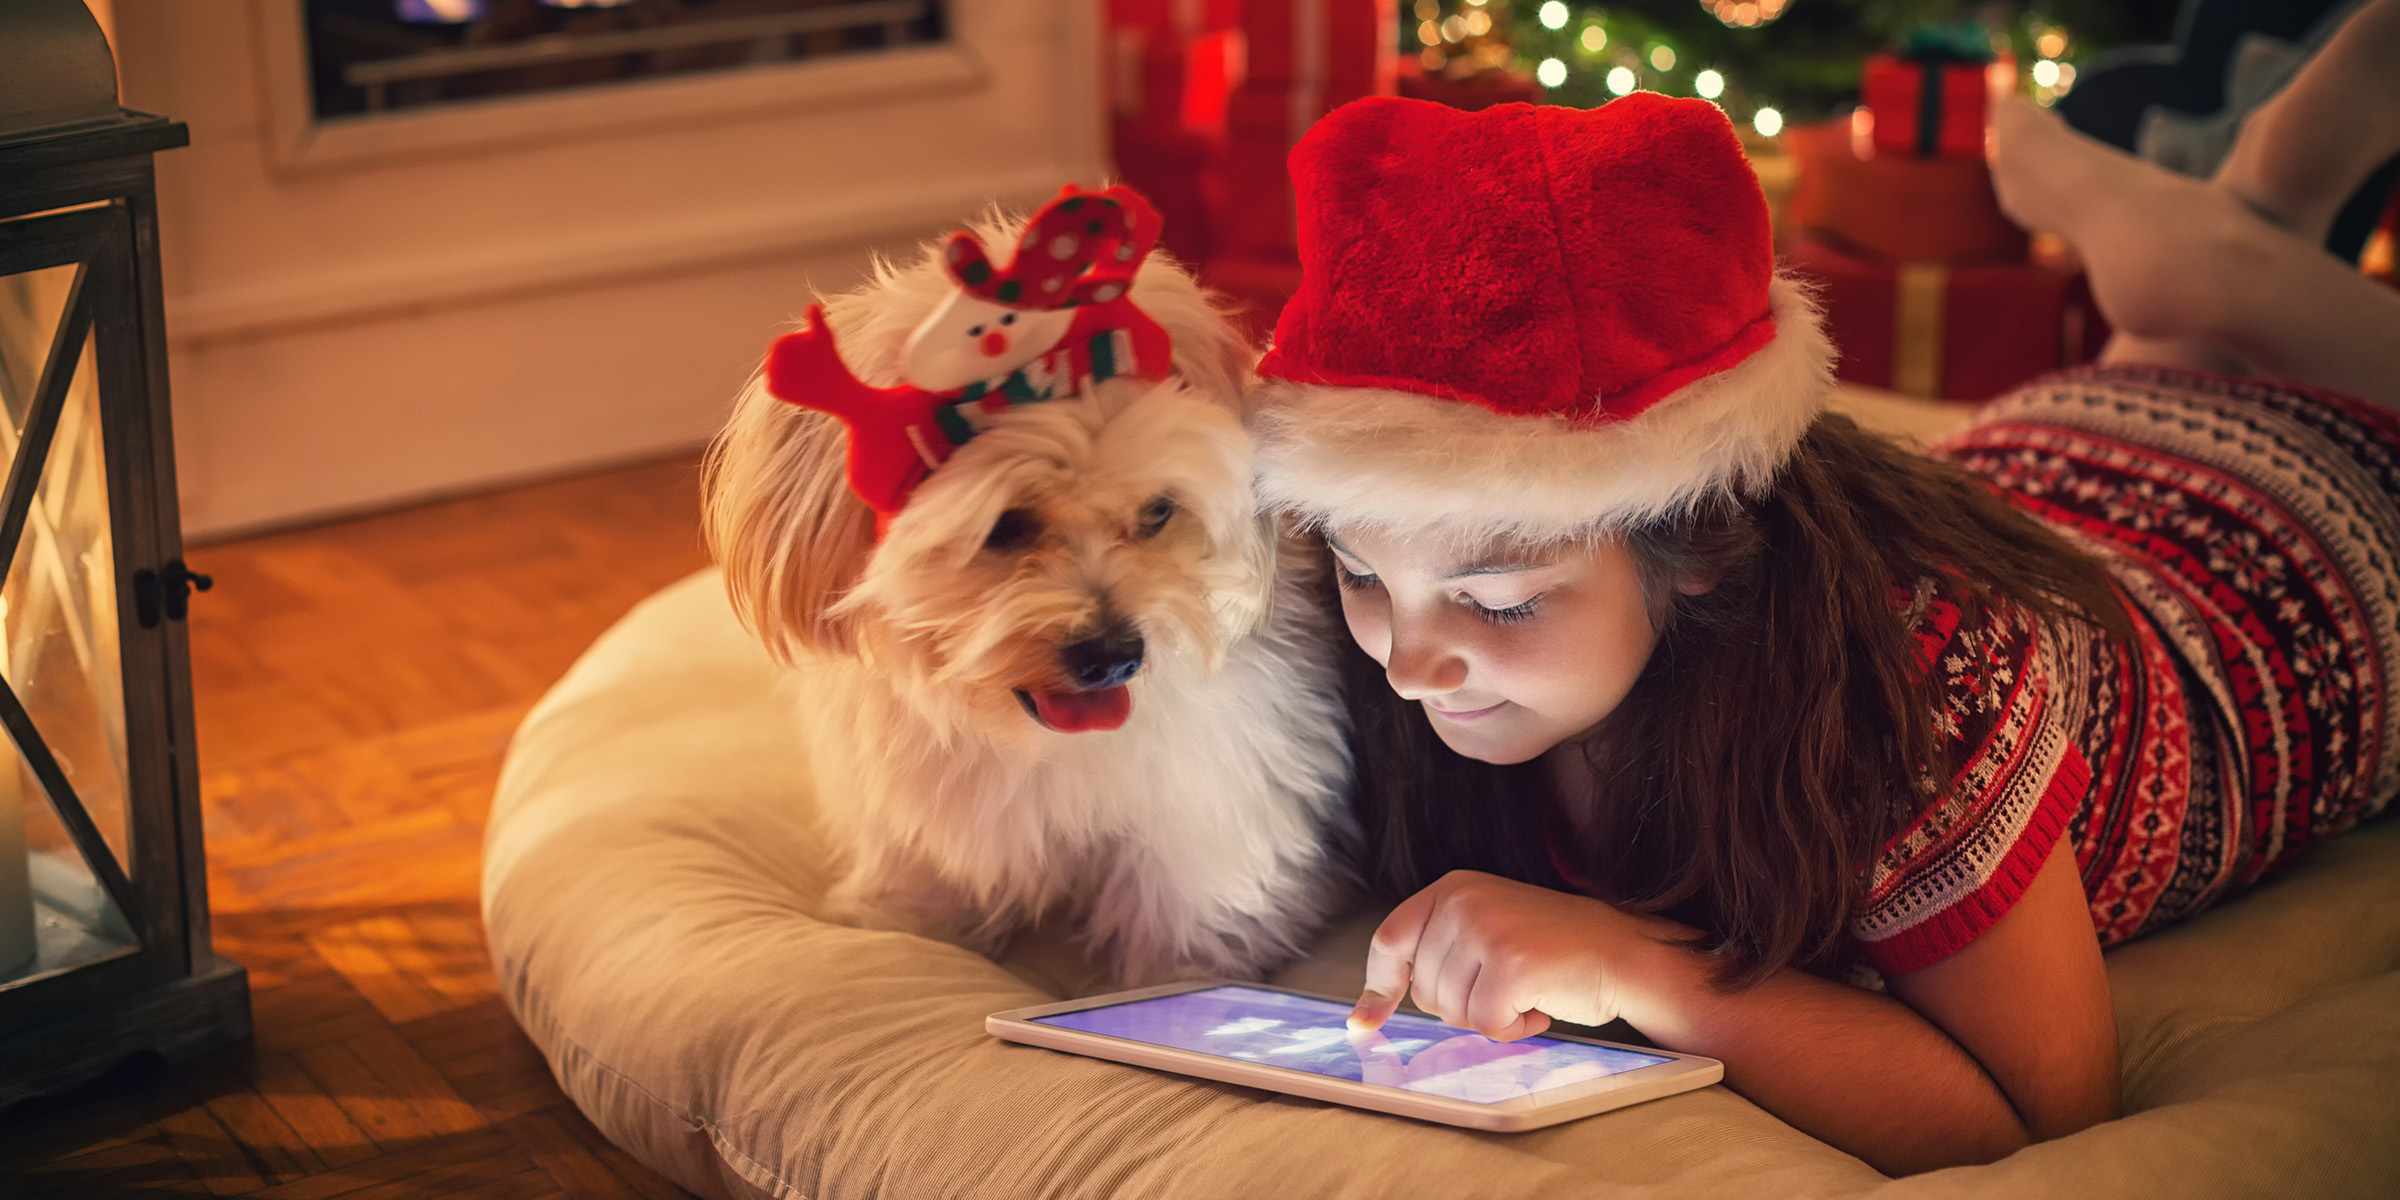 14 cutting-edge tech gifts and gadgets for kids of all ages